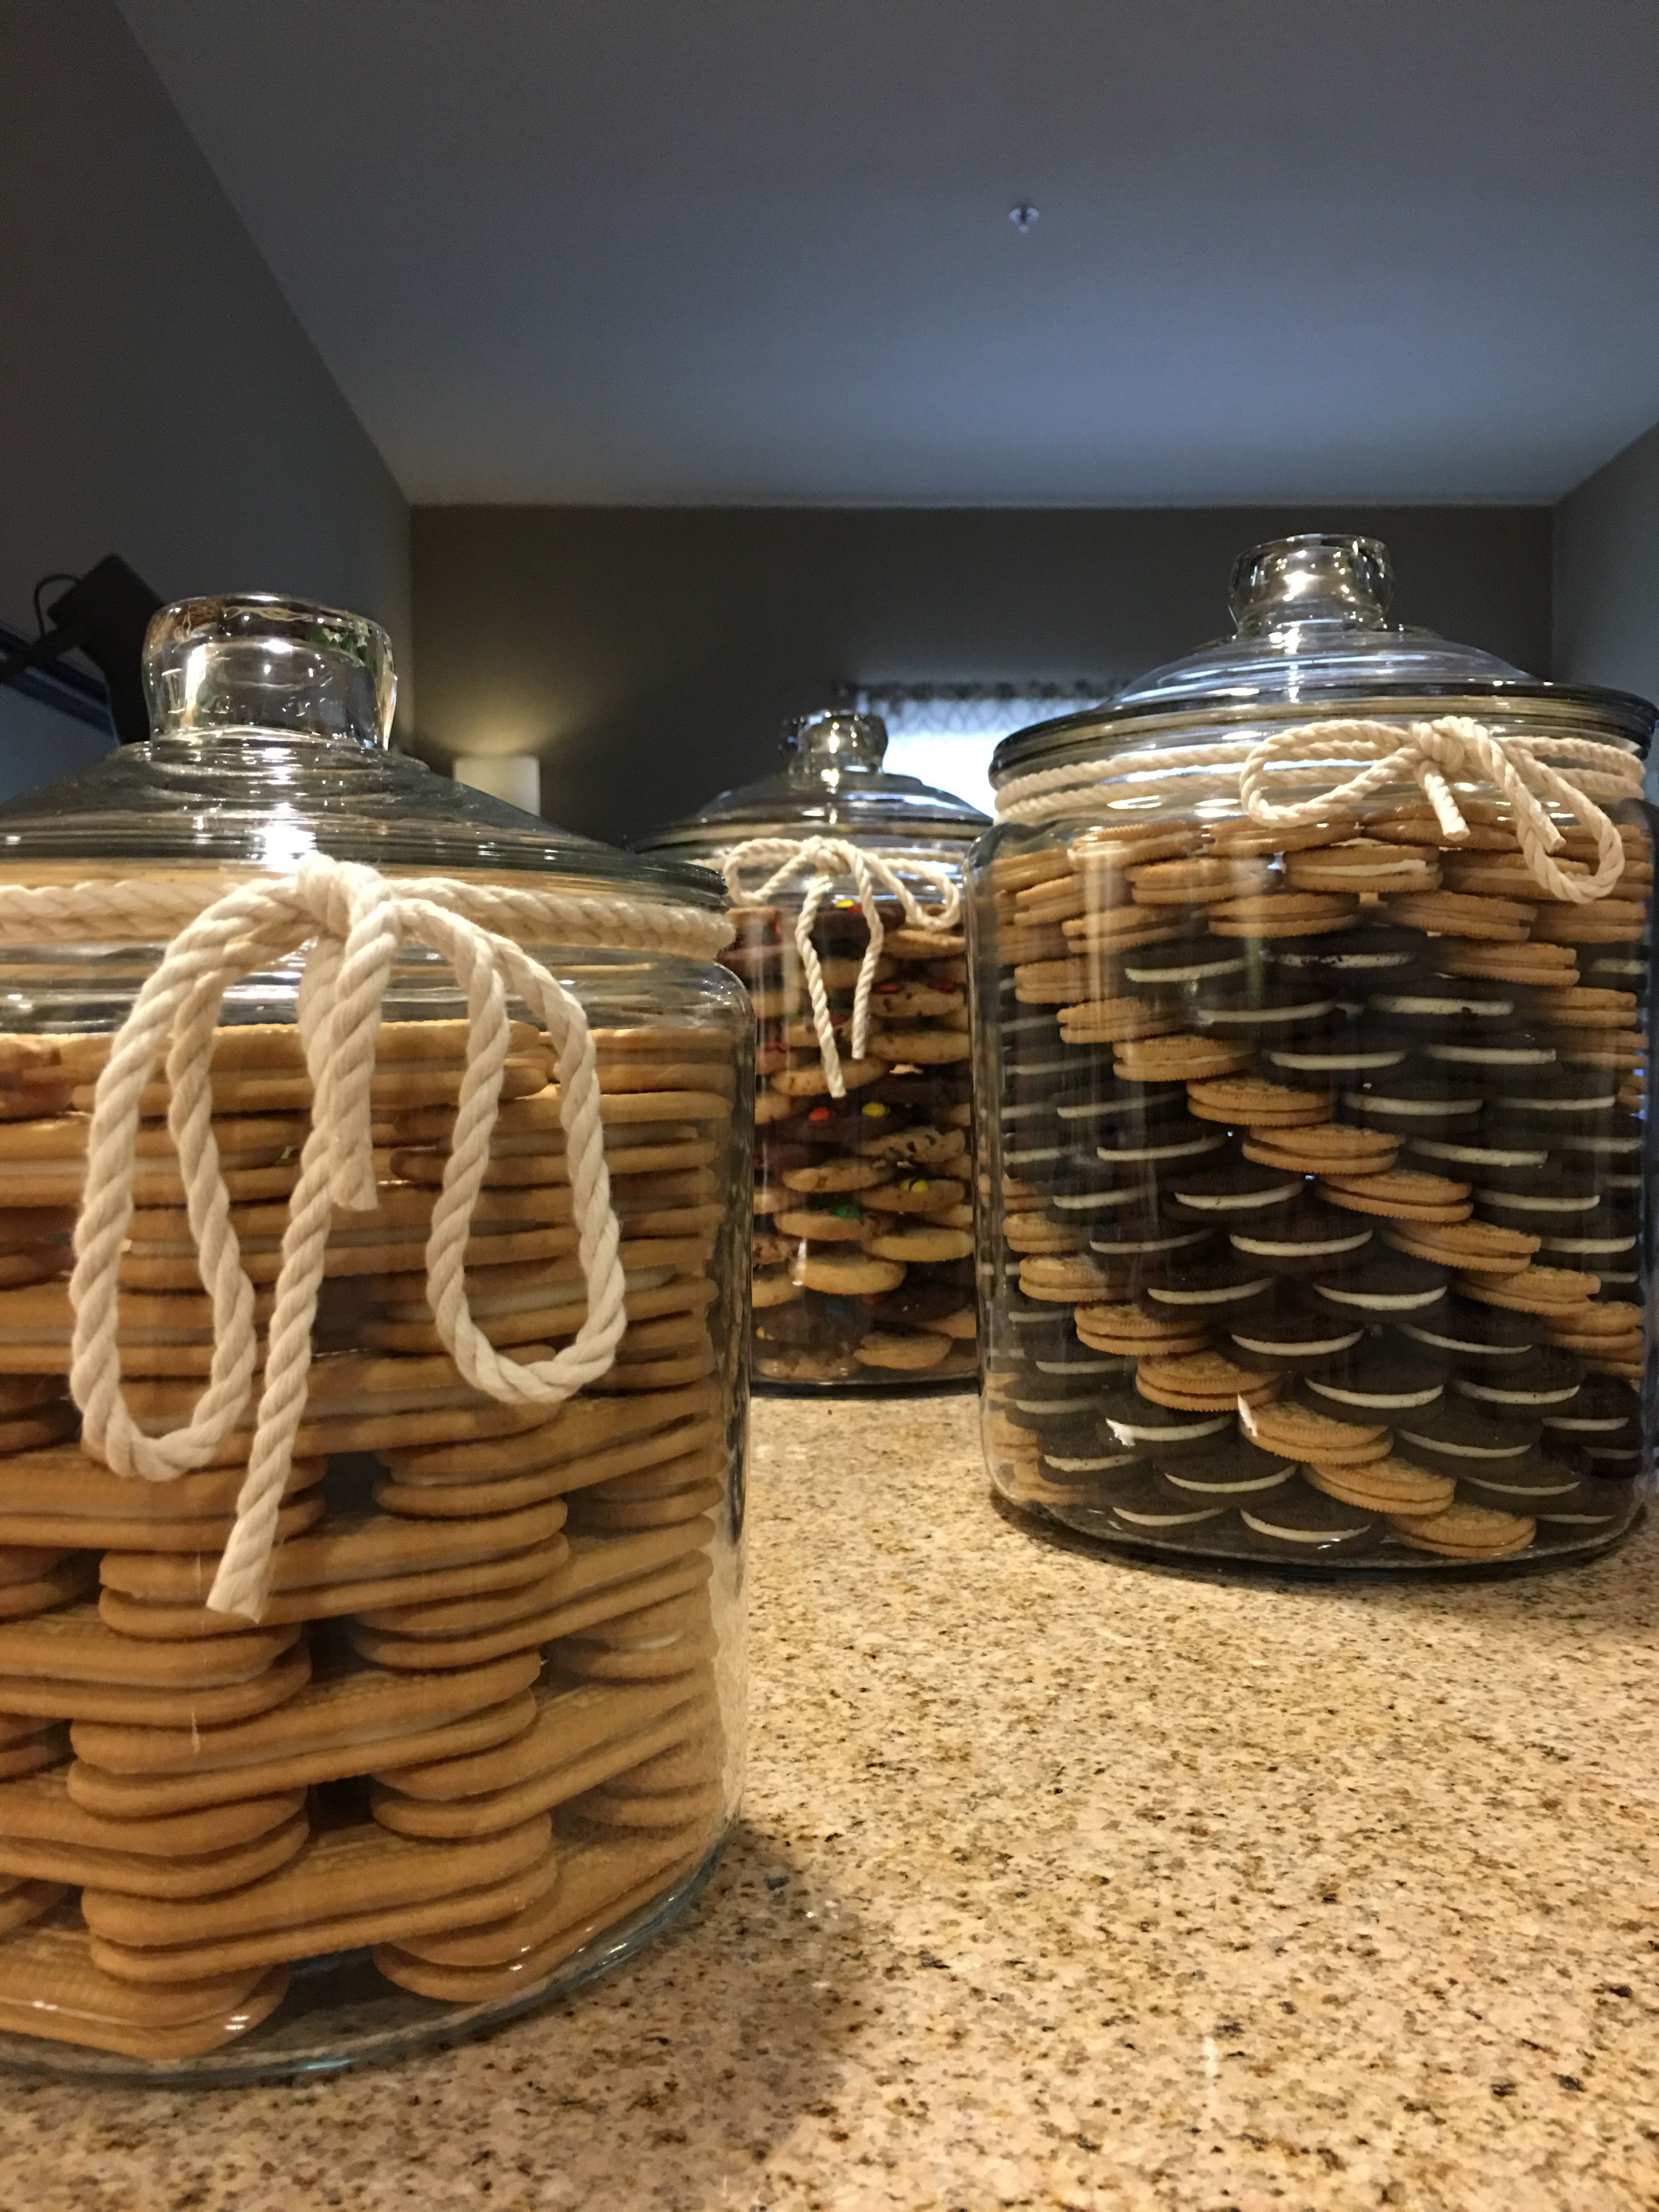 Khloe Kardashian Inspired Cookie Jars But Slightly Modified By  #RogerChanDesign With Swirl Patterns In Cookies